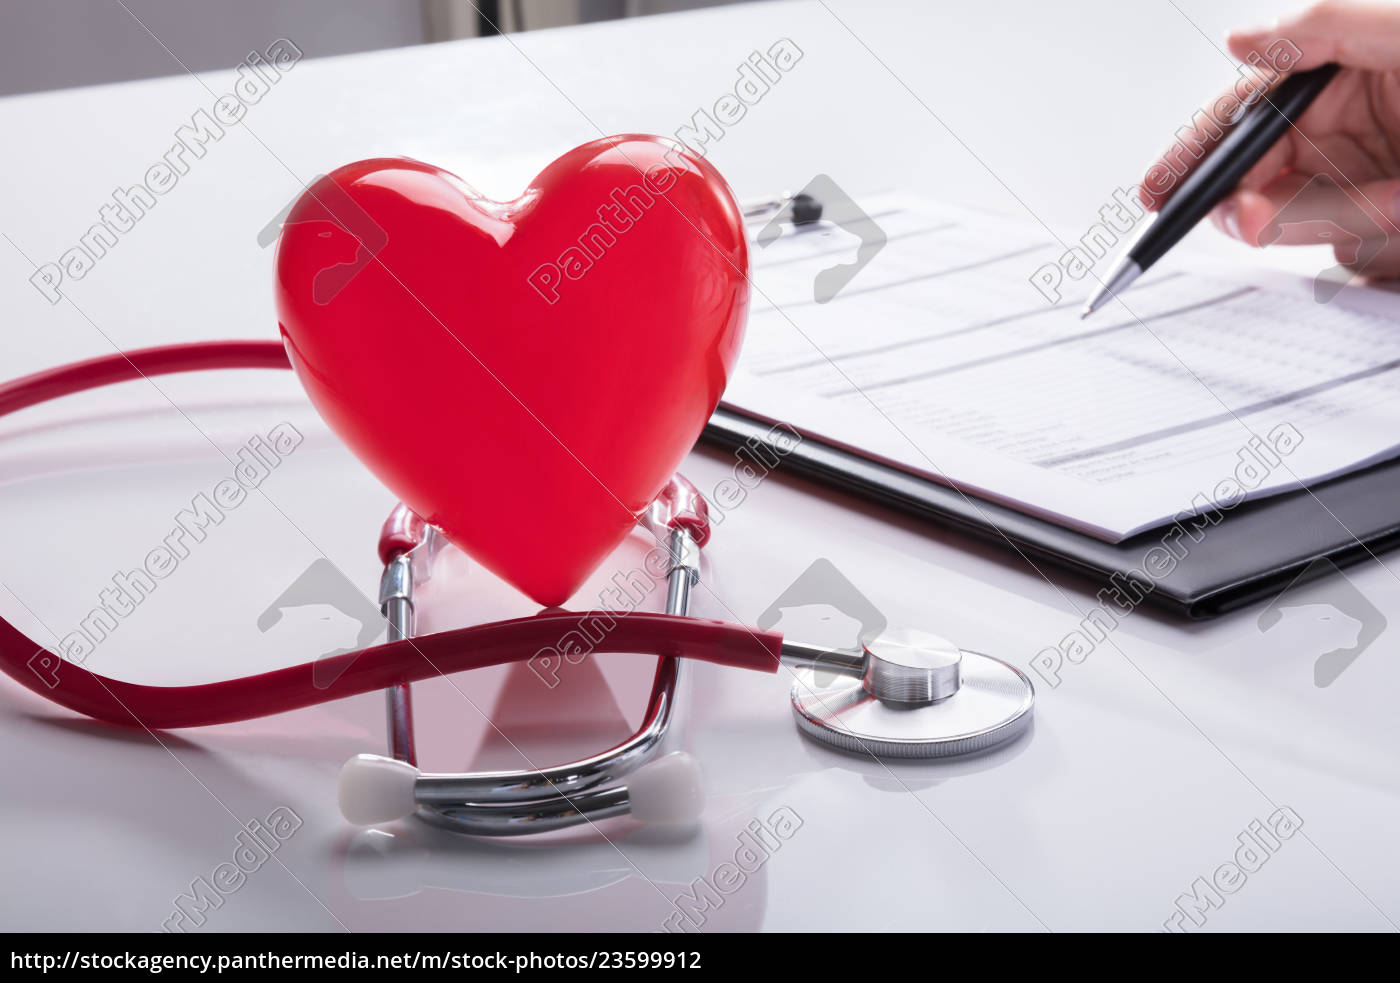 close-up, of, stethoscope, and, red, heart - 23599912